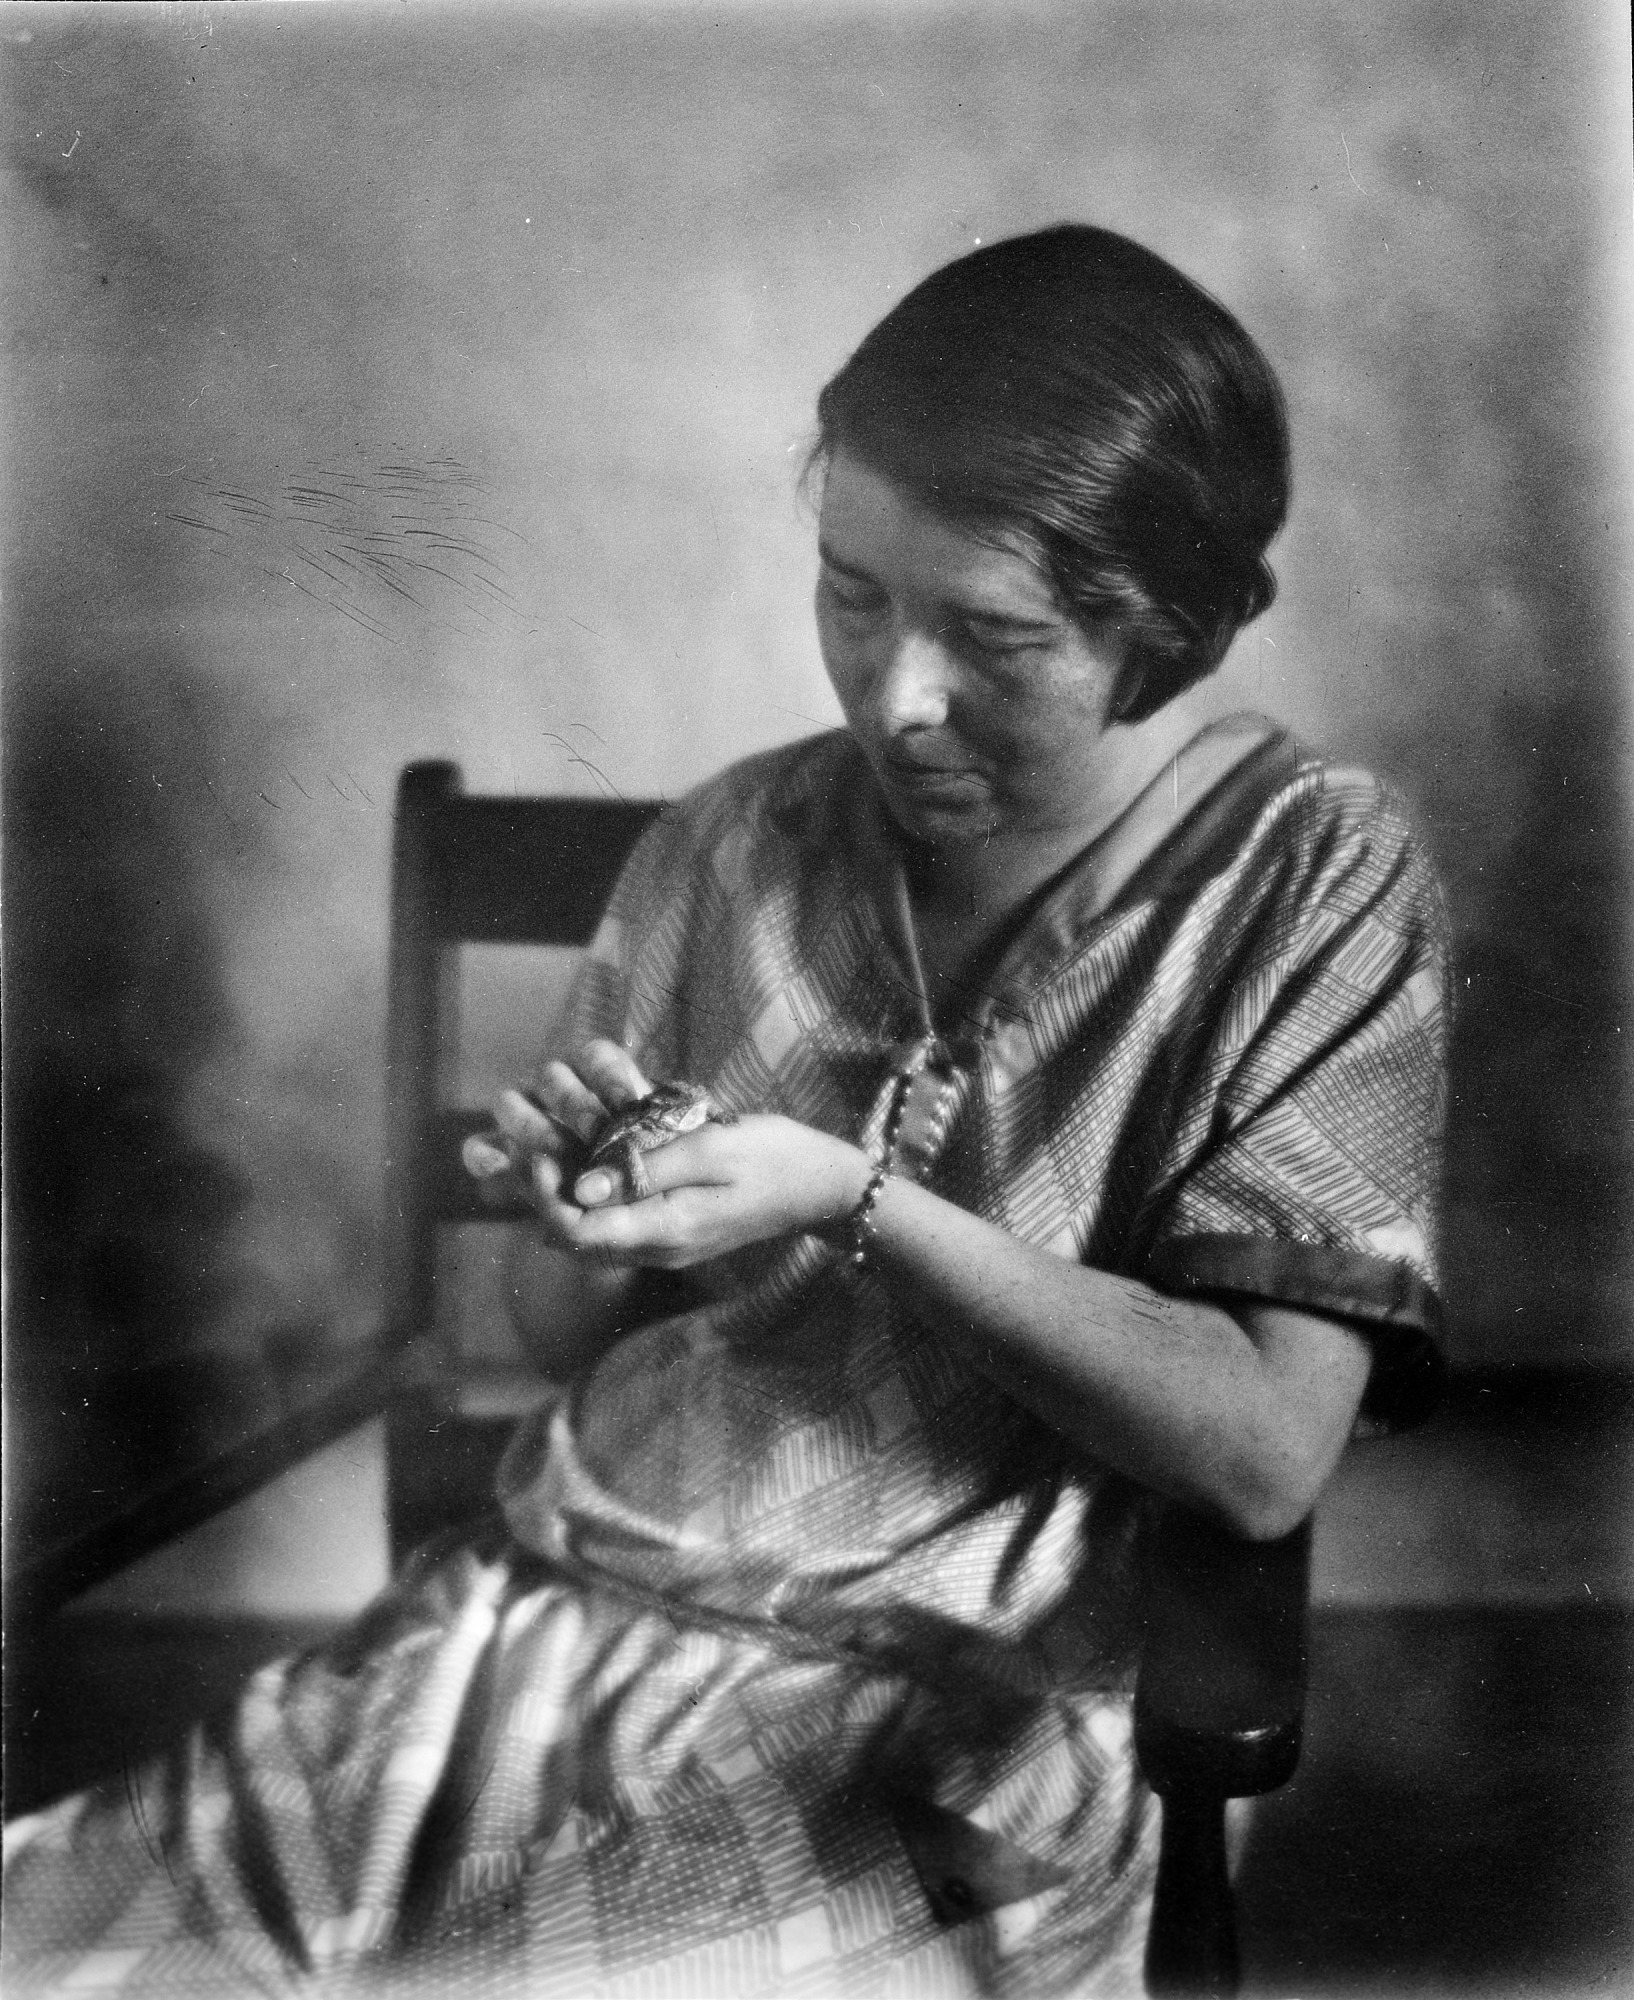 Doris M. Cochran Holding Frog, by Unknown, c. 1930s, Smithsonian Archives - History Div, 96-956.